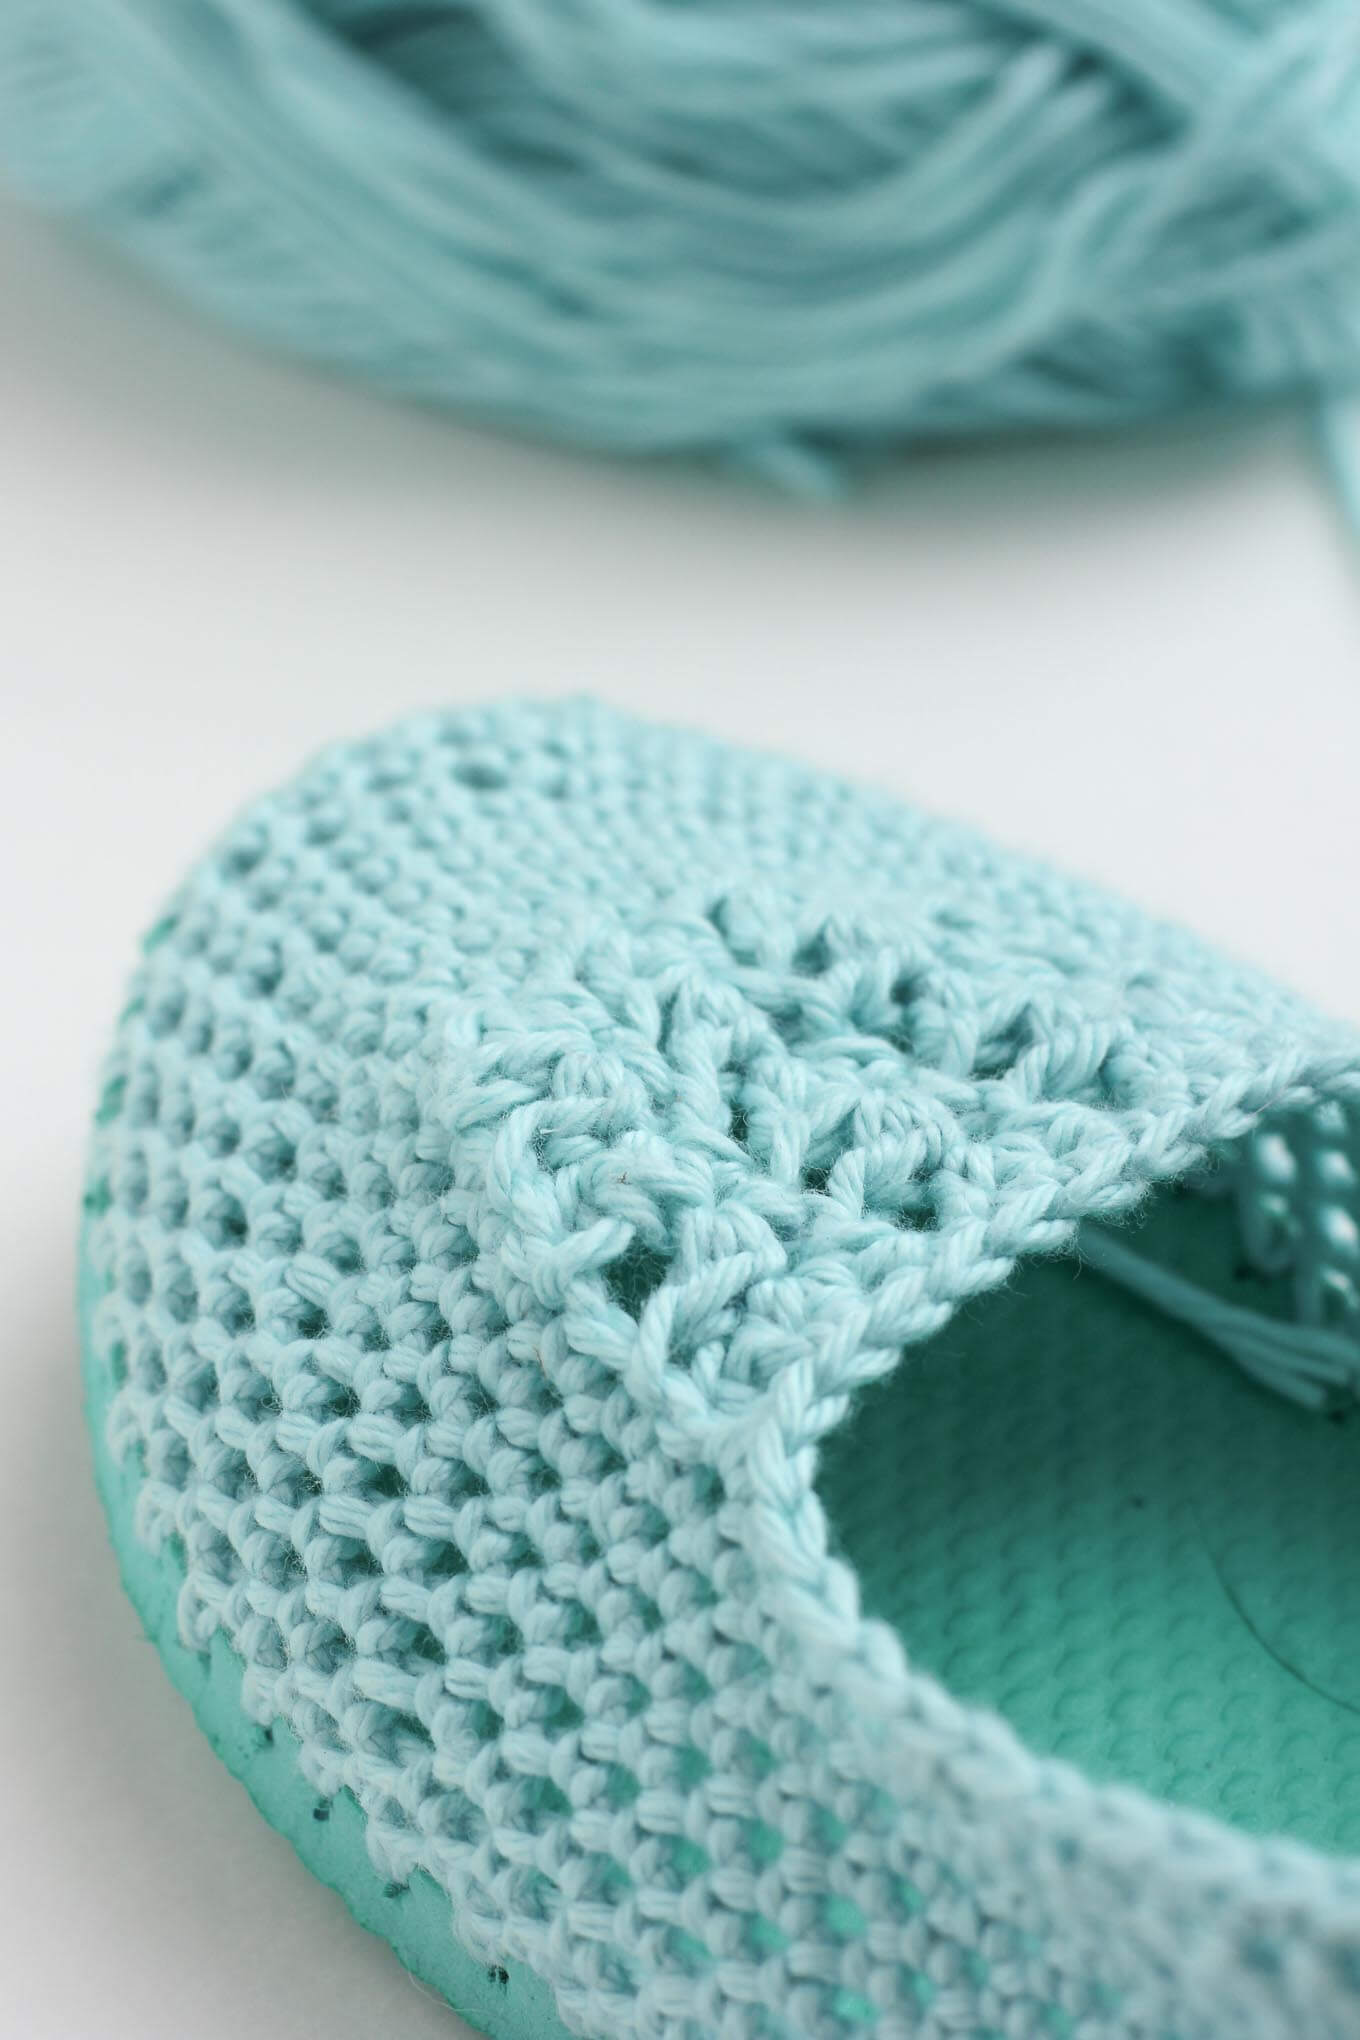 Crochet Patterns Using Flip Flops : FREE LIGHTWEIGHT CROCHET SLIPPERS PATTERN?WITH FLIP FLOP ...